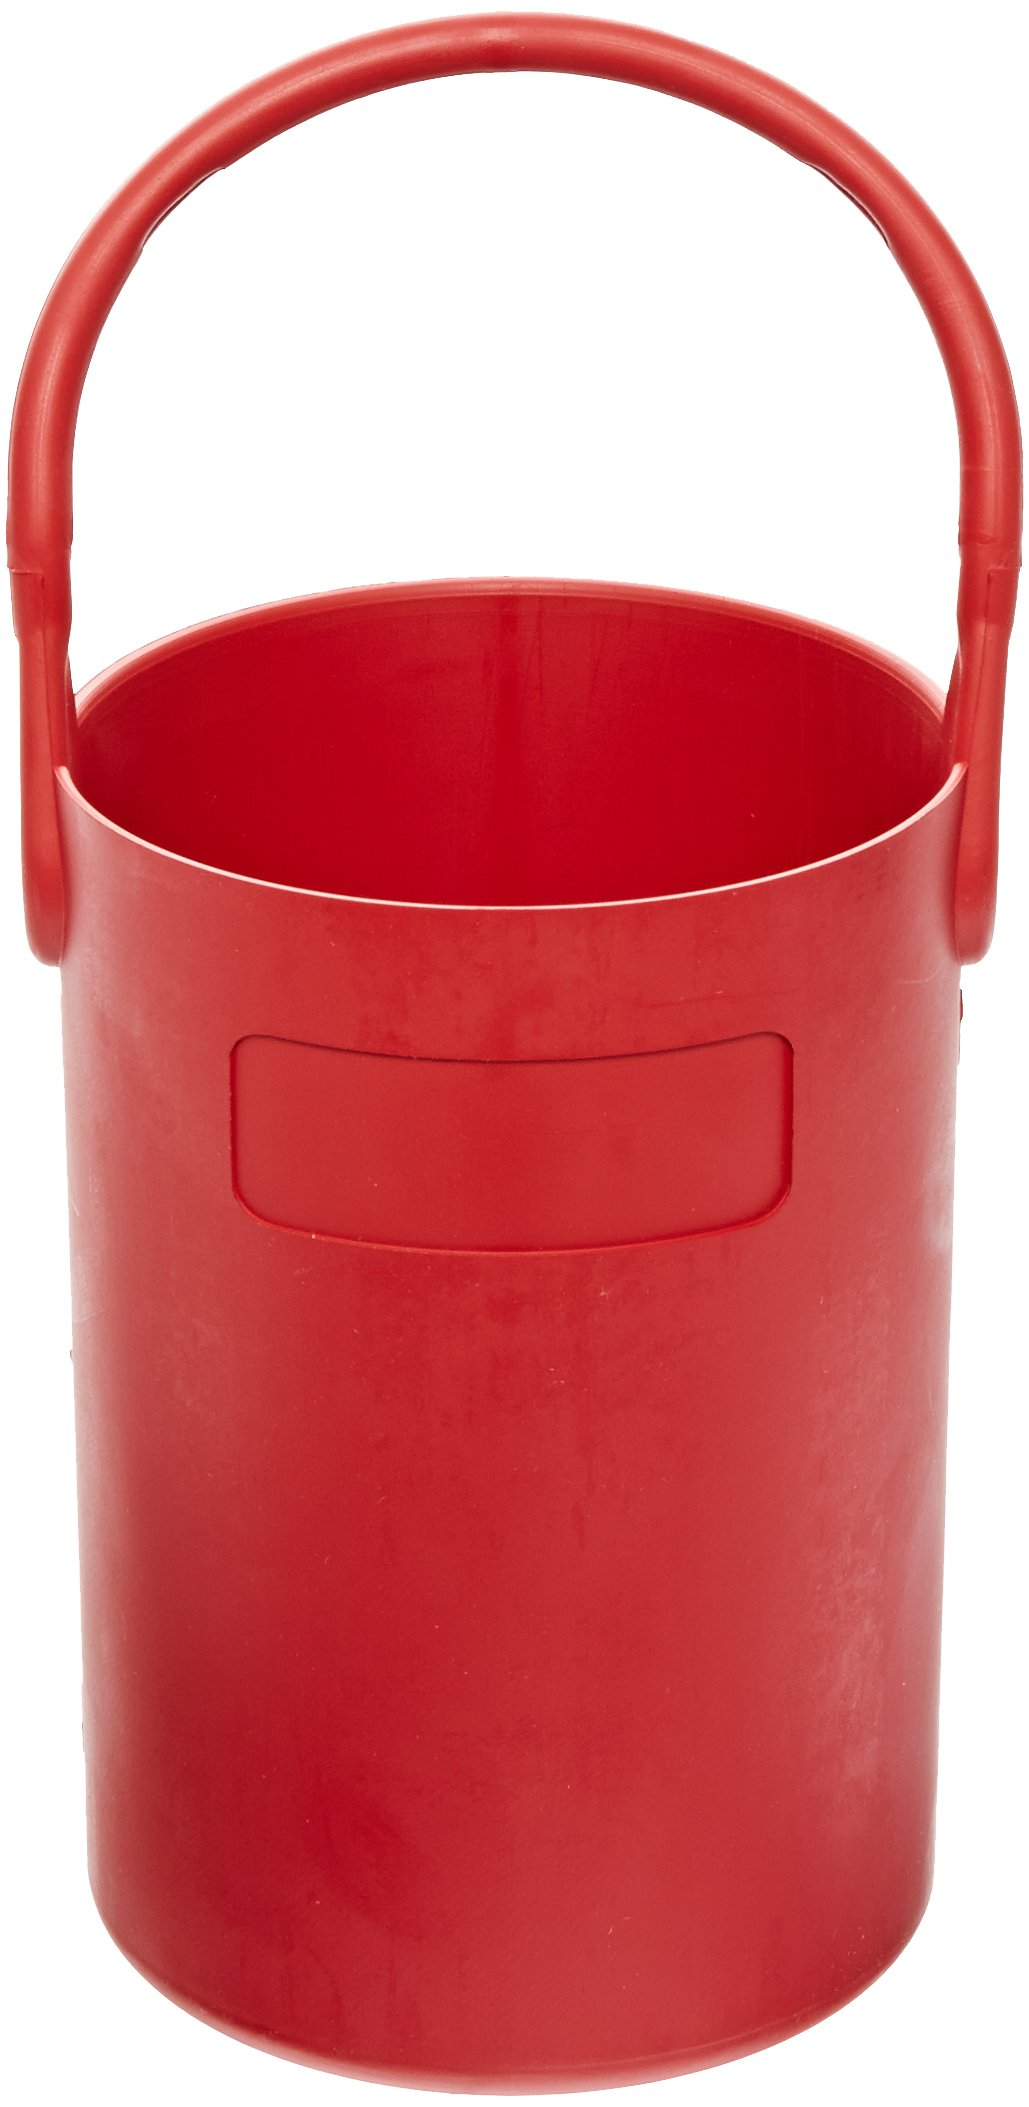 Eagle Thermoplastics B-100-1 Thermoplastic Safety Bottle Tote Carrier, Red, 10'' Height